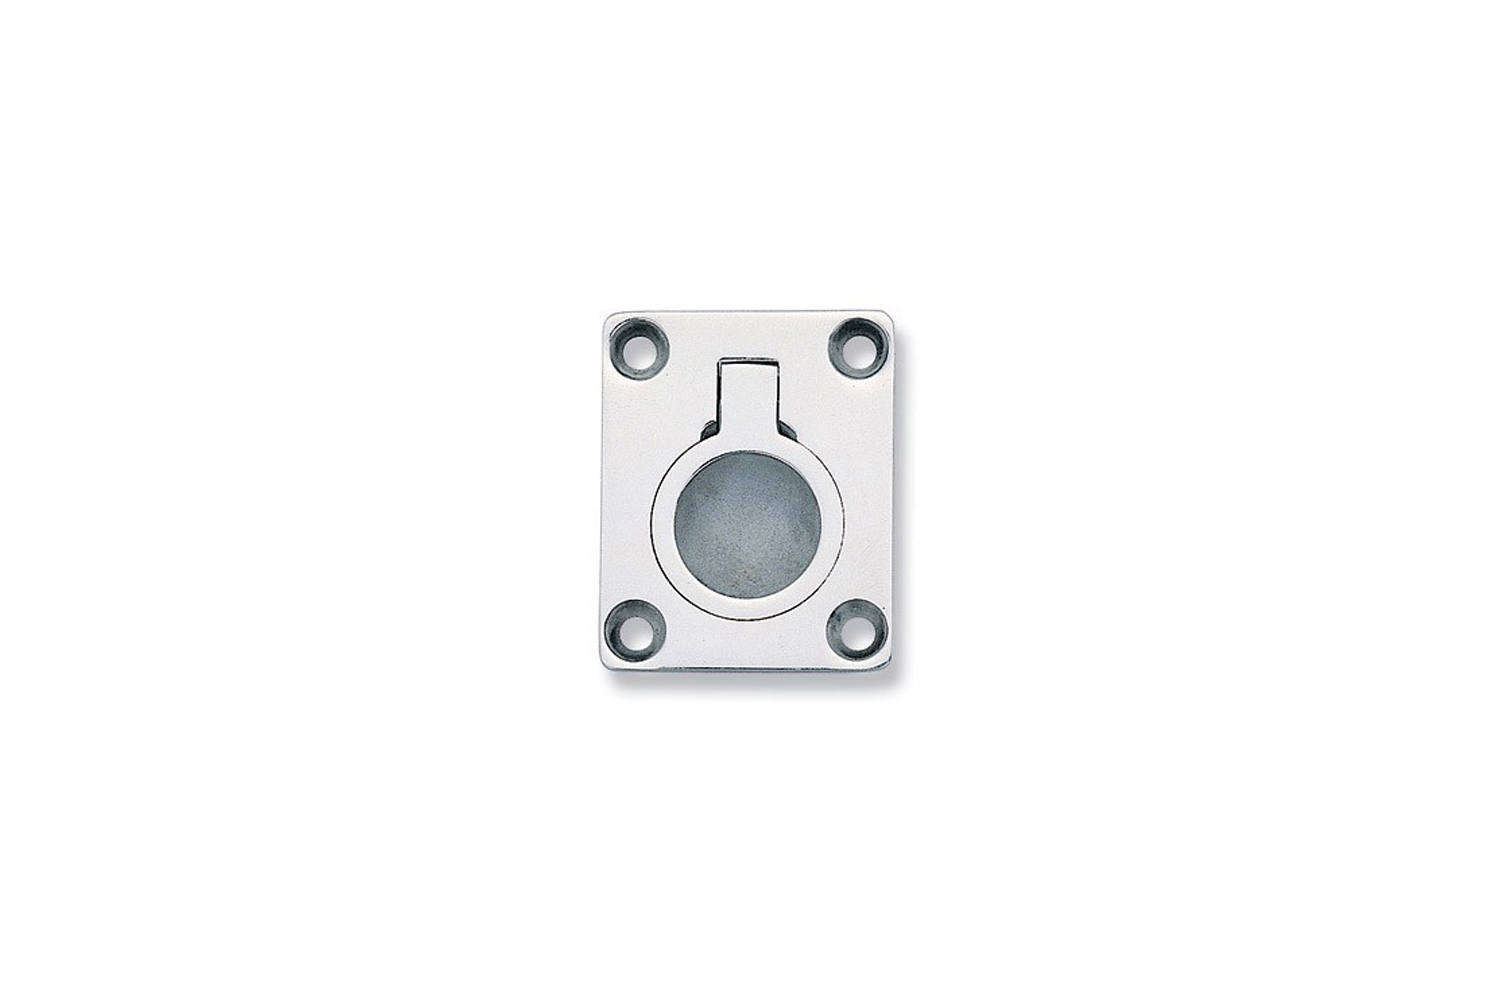 The Alema Hardware 900 Stainless Steel Ring Pull is $